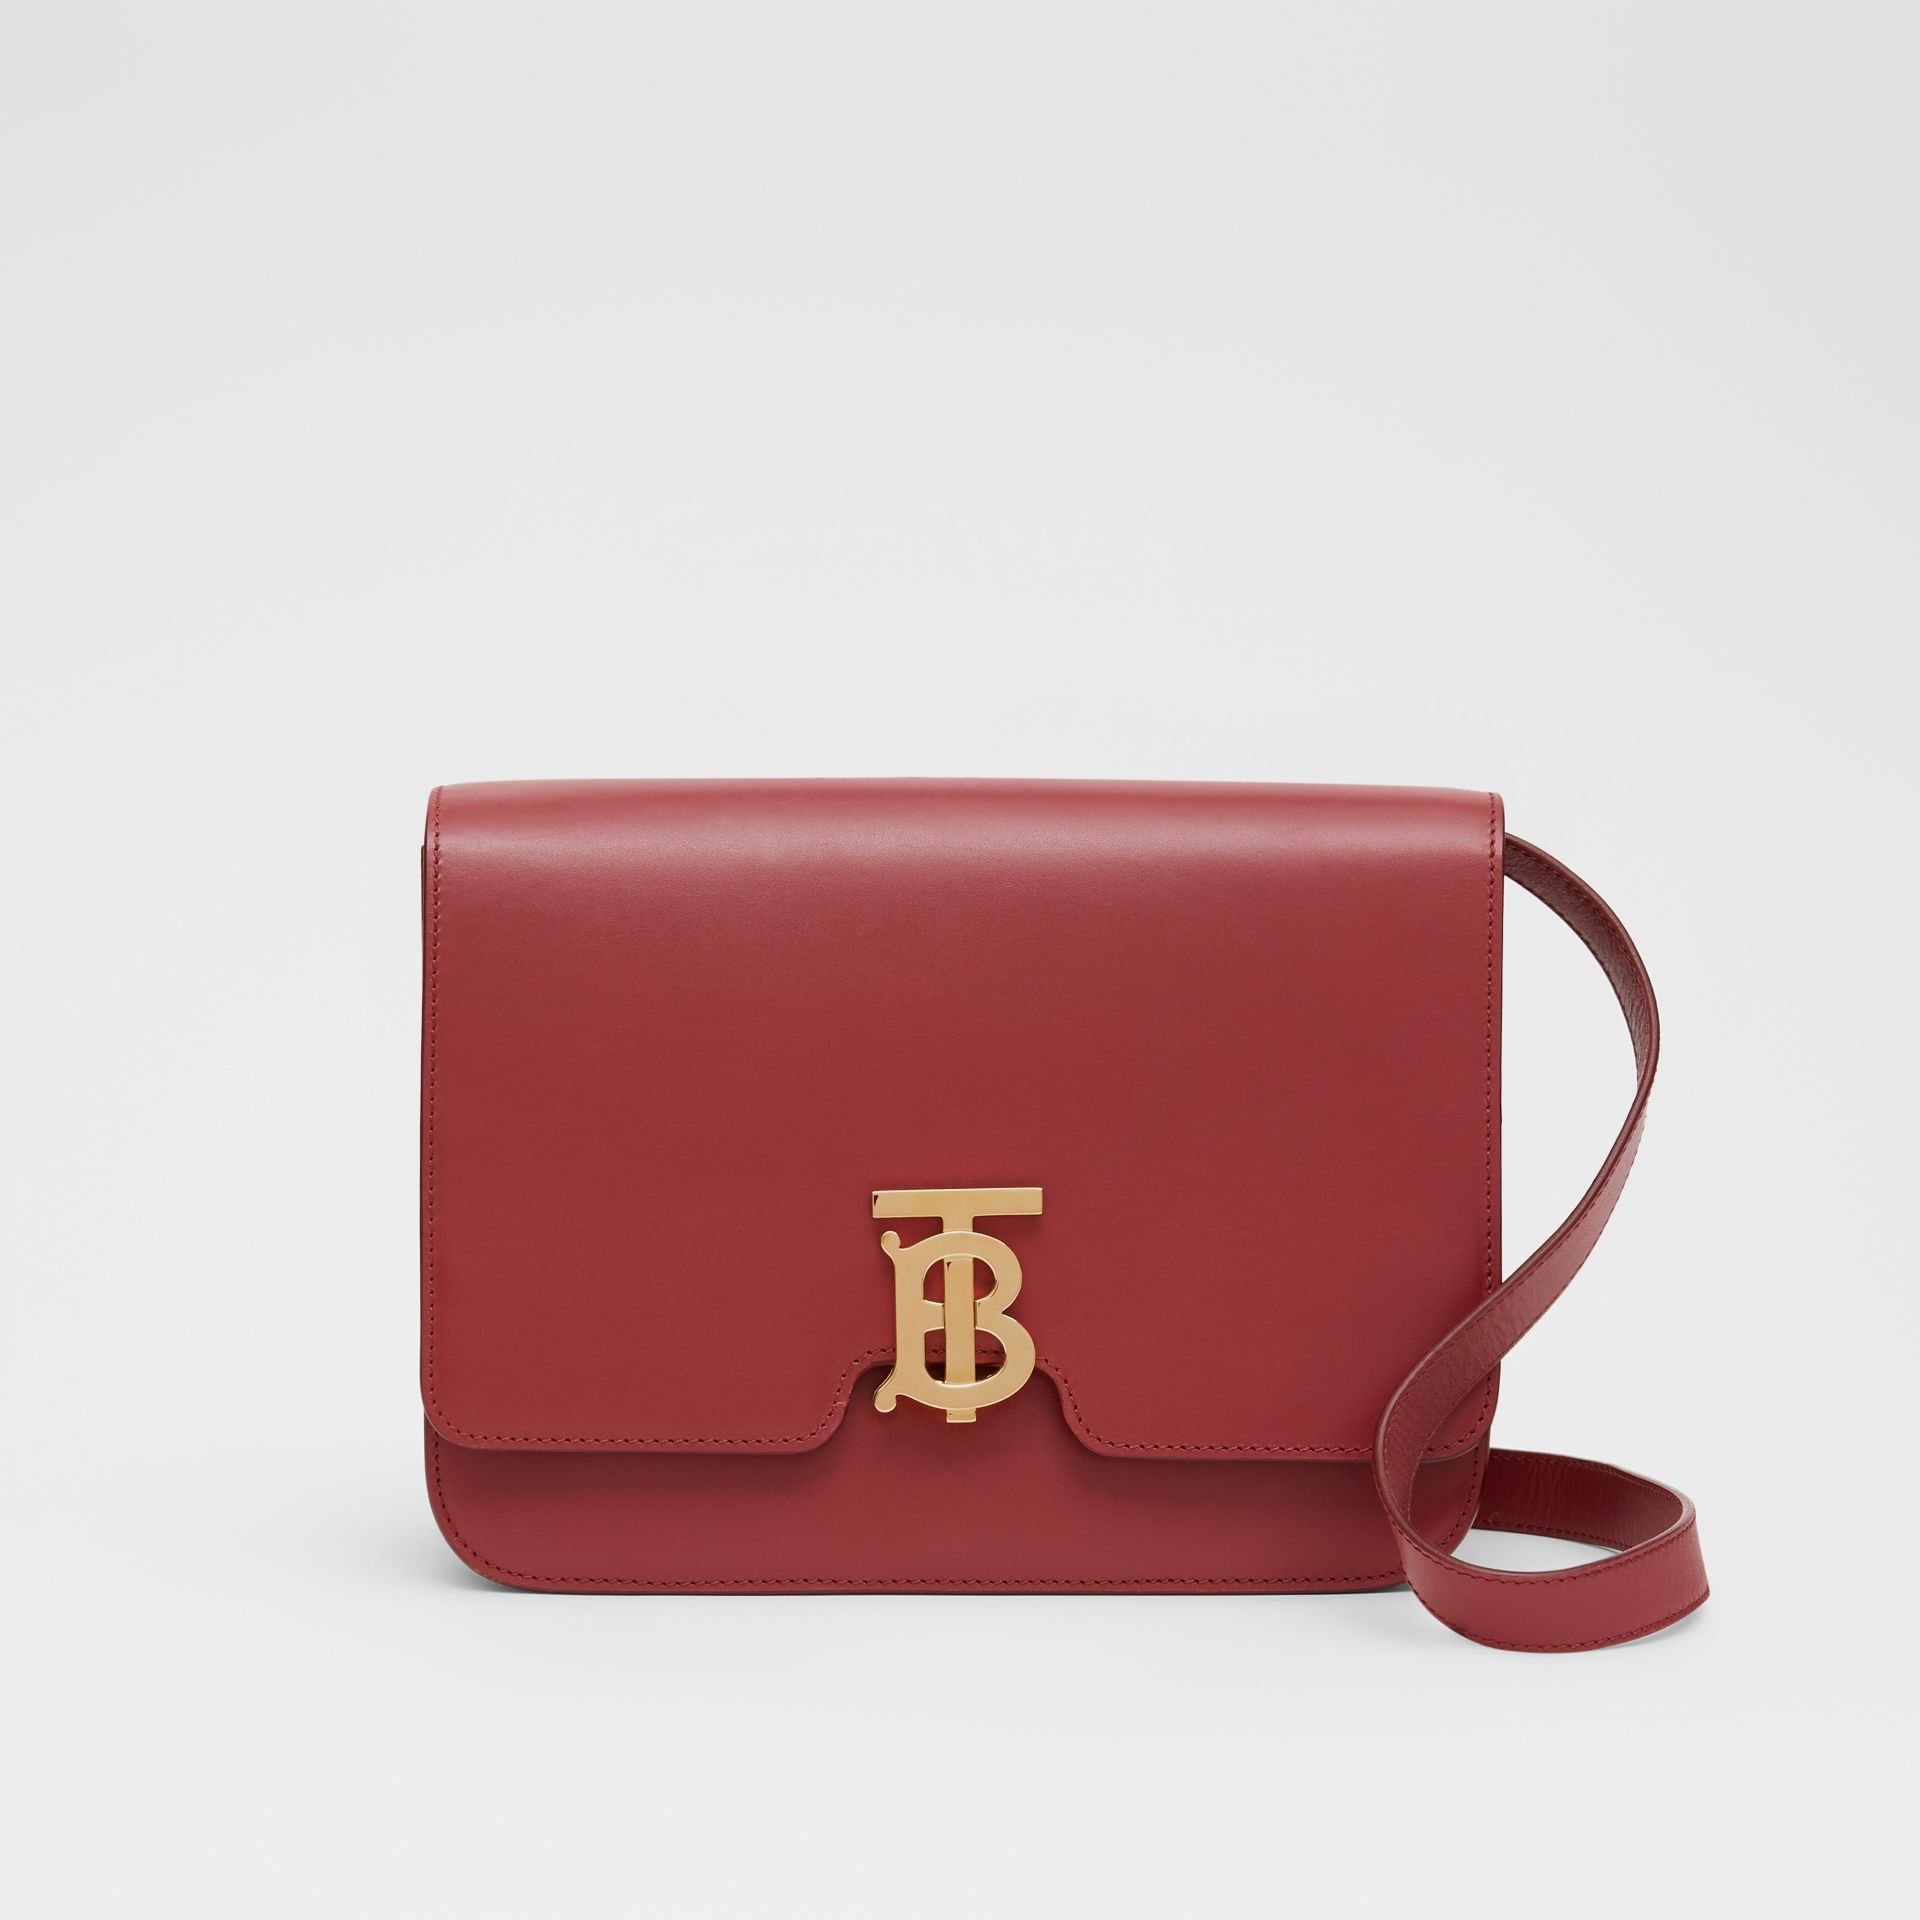 Medium Leather TB Bag in Crimson - Women | Burberry - gallery image 0